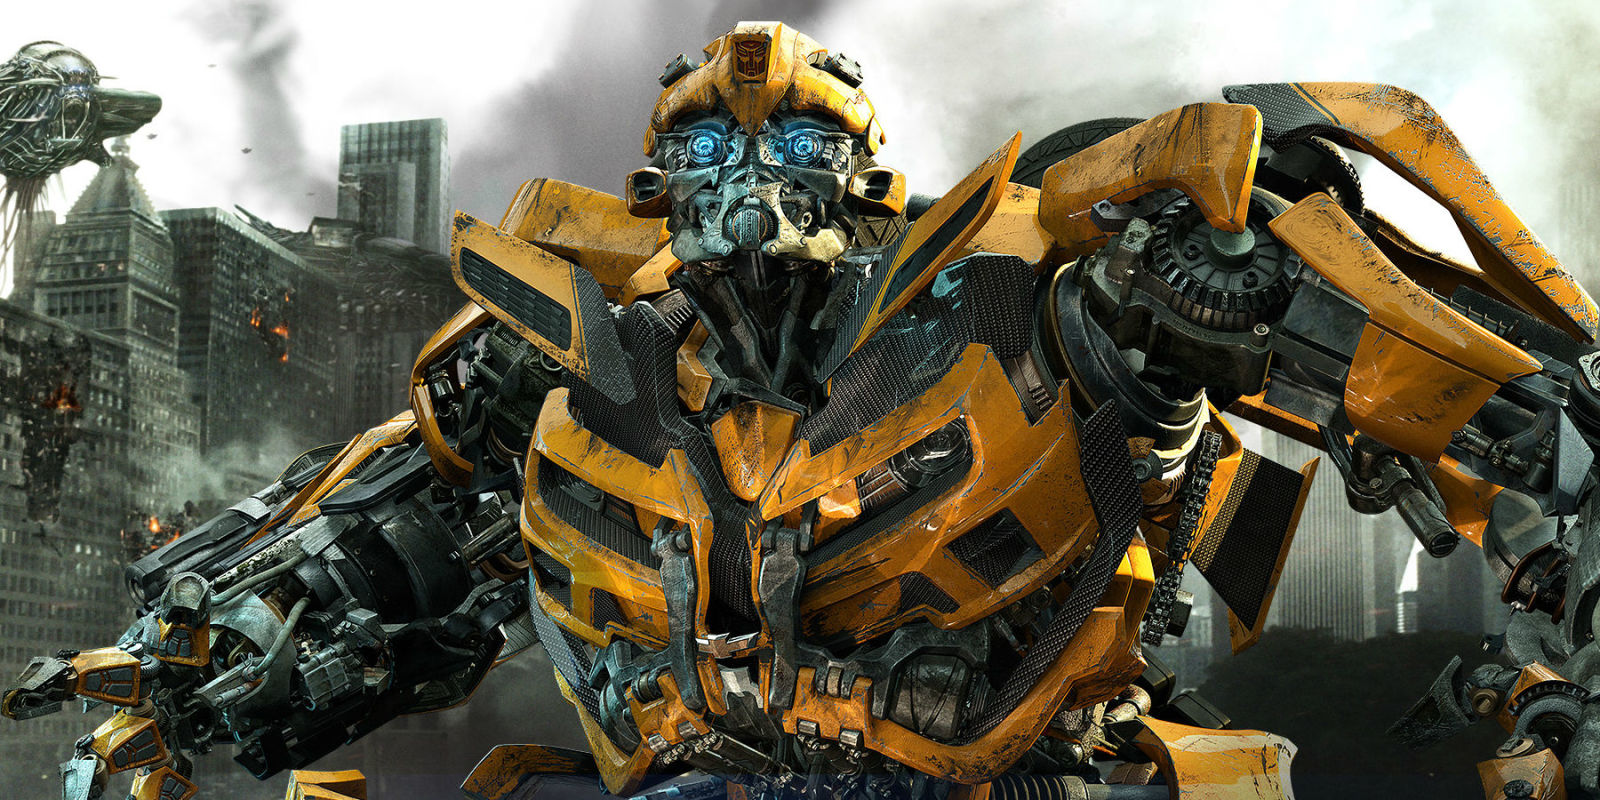 Transformers Spin Off Bumblebee The Movie Drops First Look Photo Emas 05 Gran With Hailee Steinfeld